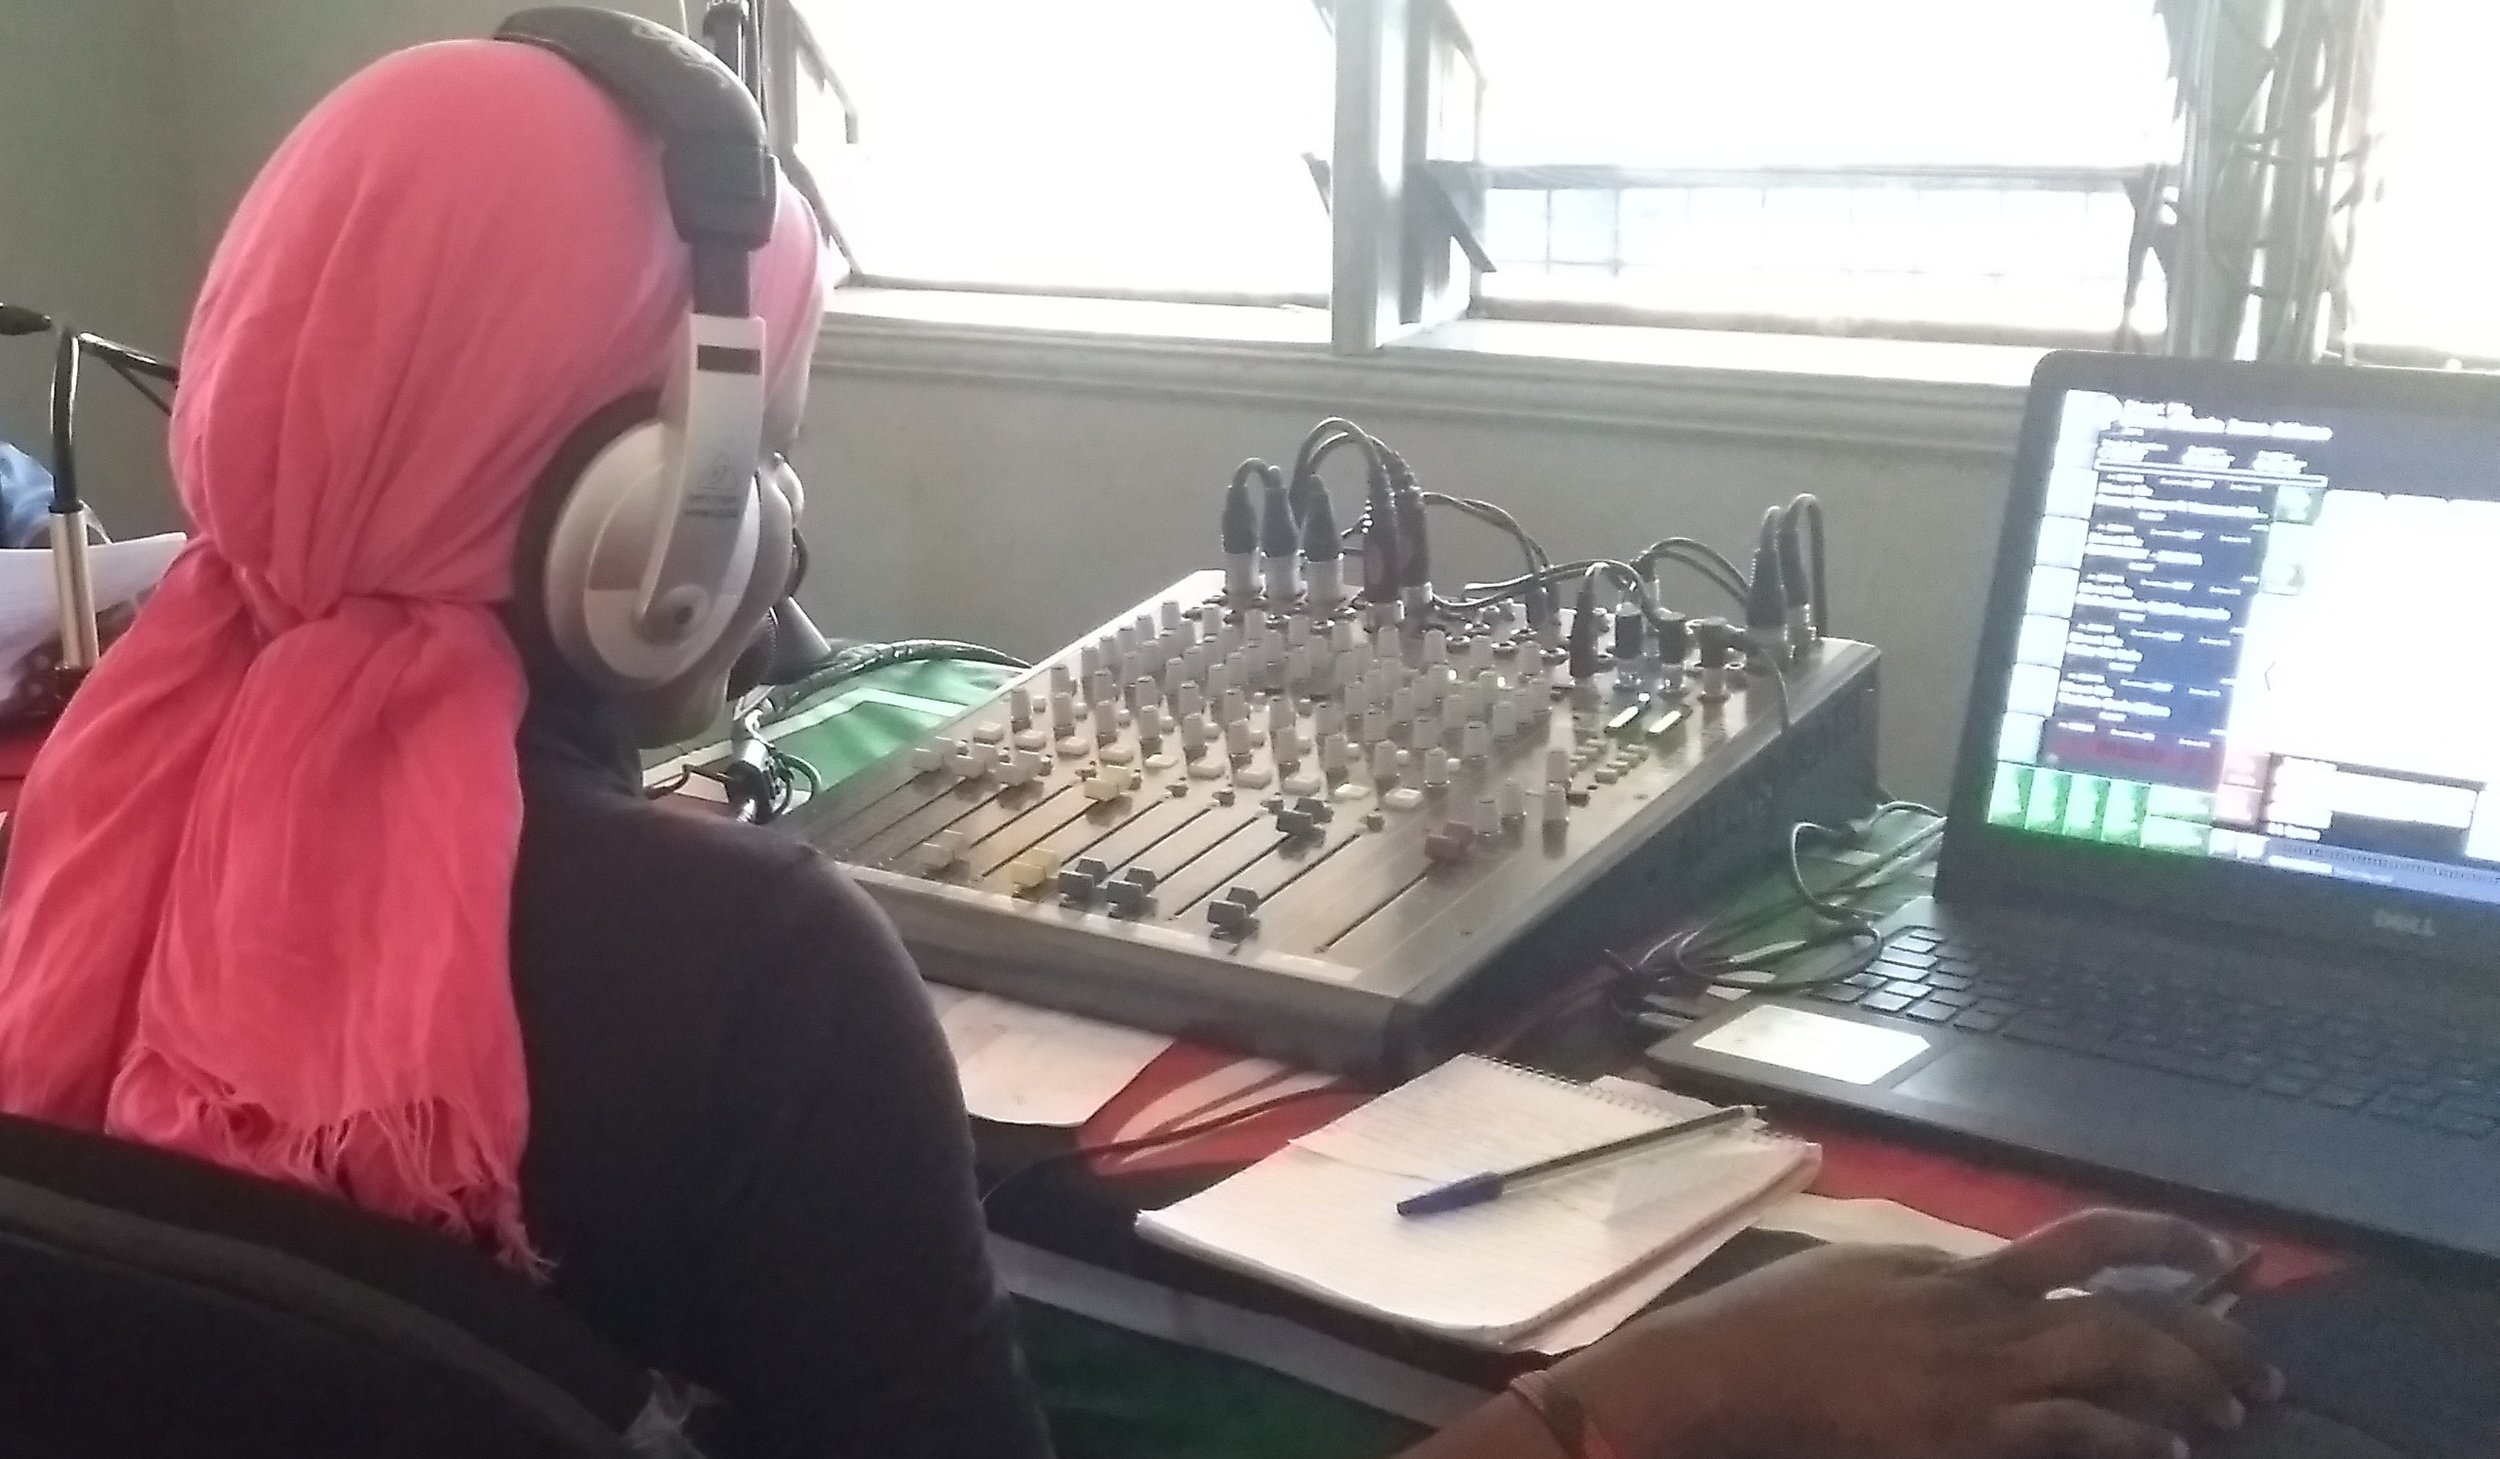 In Sierra Leone and across Africa, radio is a powerful tool to raise awareness of gender violence and give women a voice.